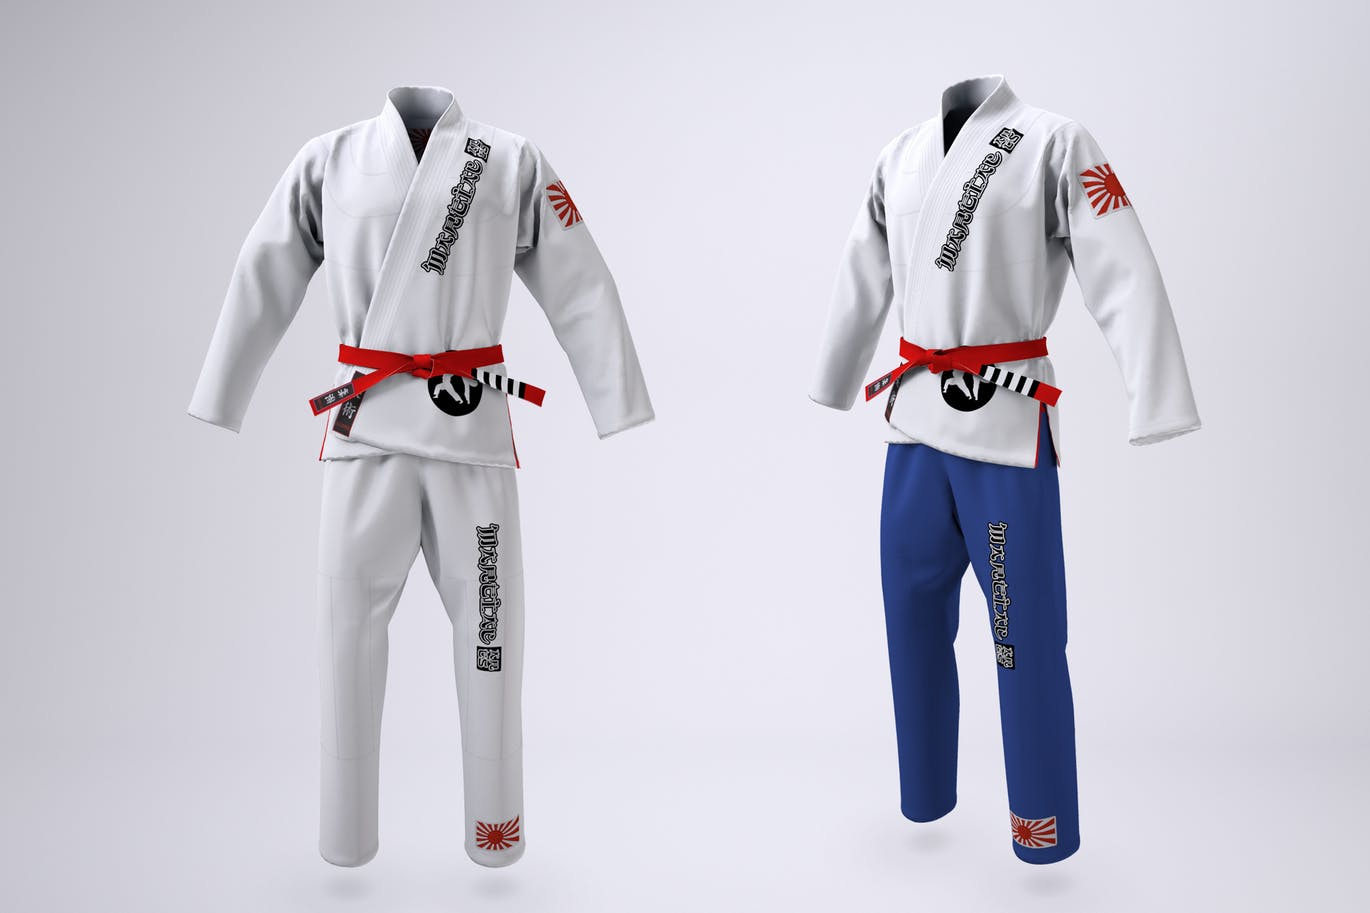 Brazilian Jiu-Jitsu Gi Uniform Mock-up